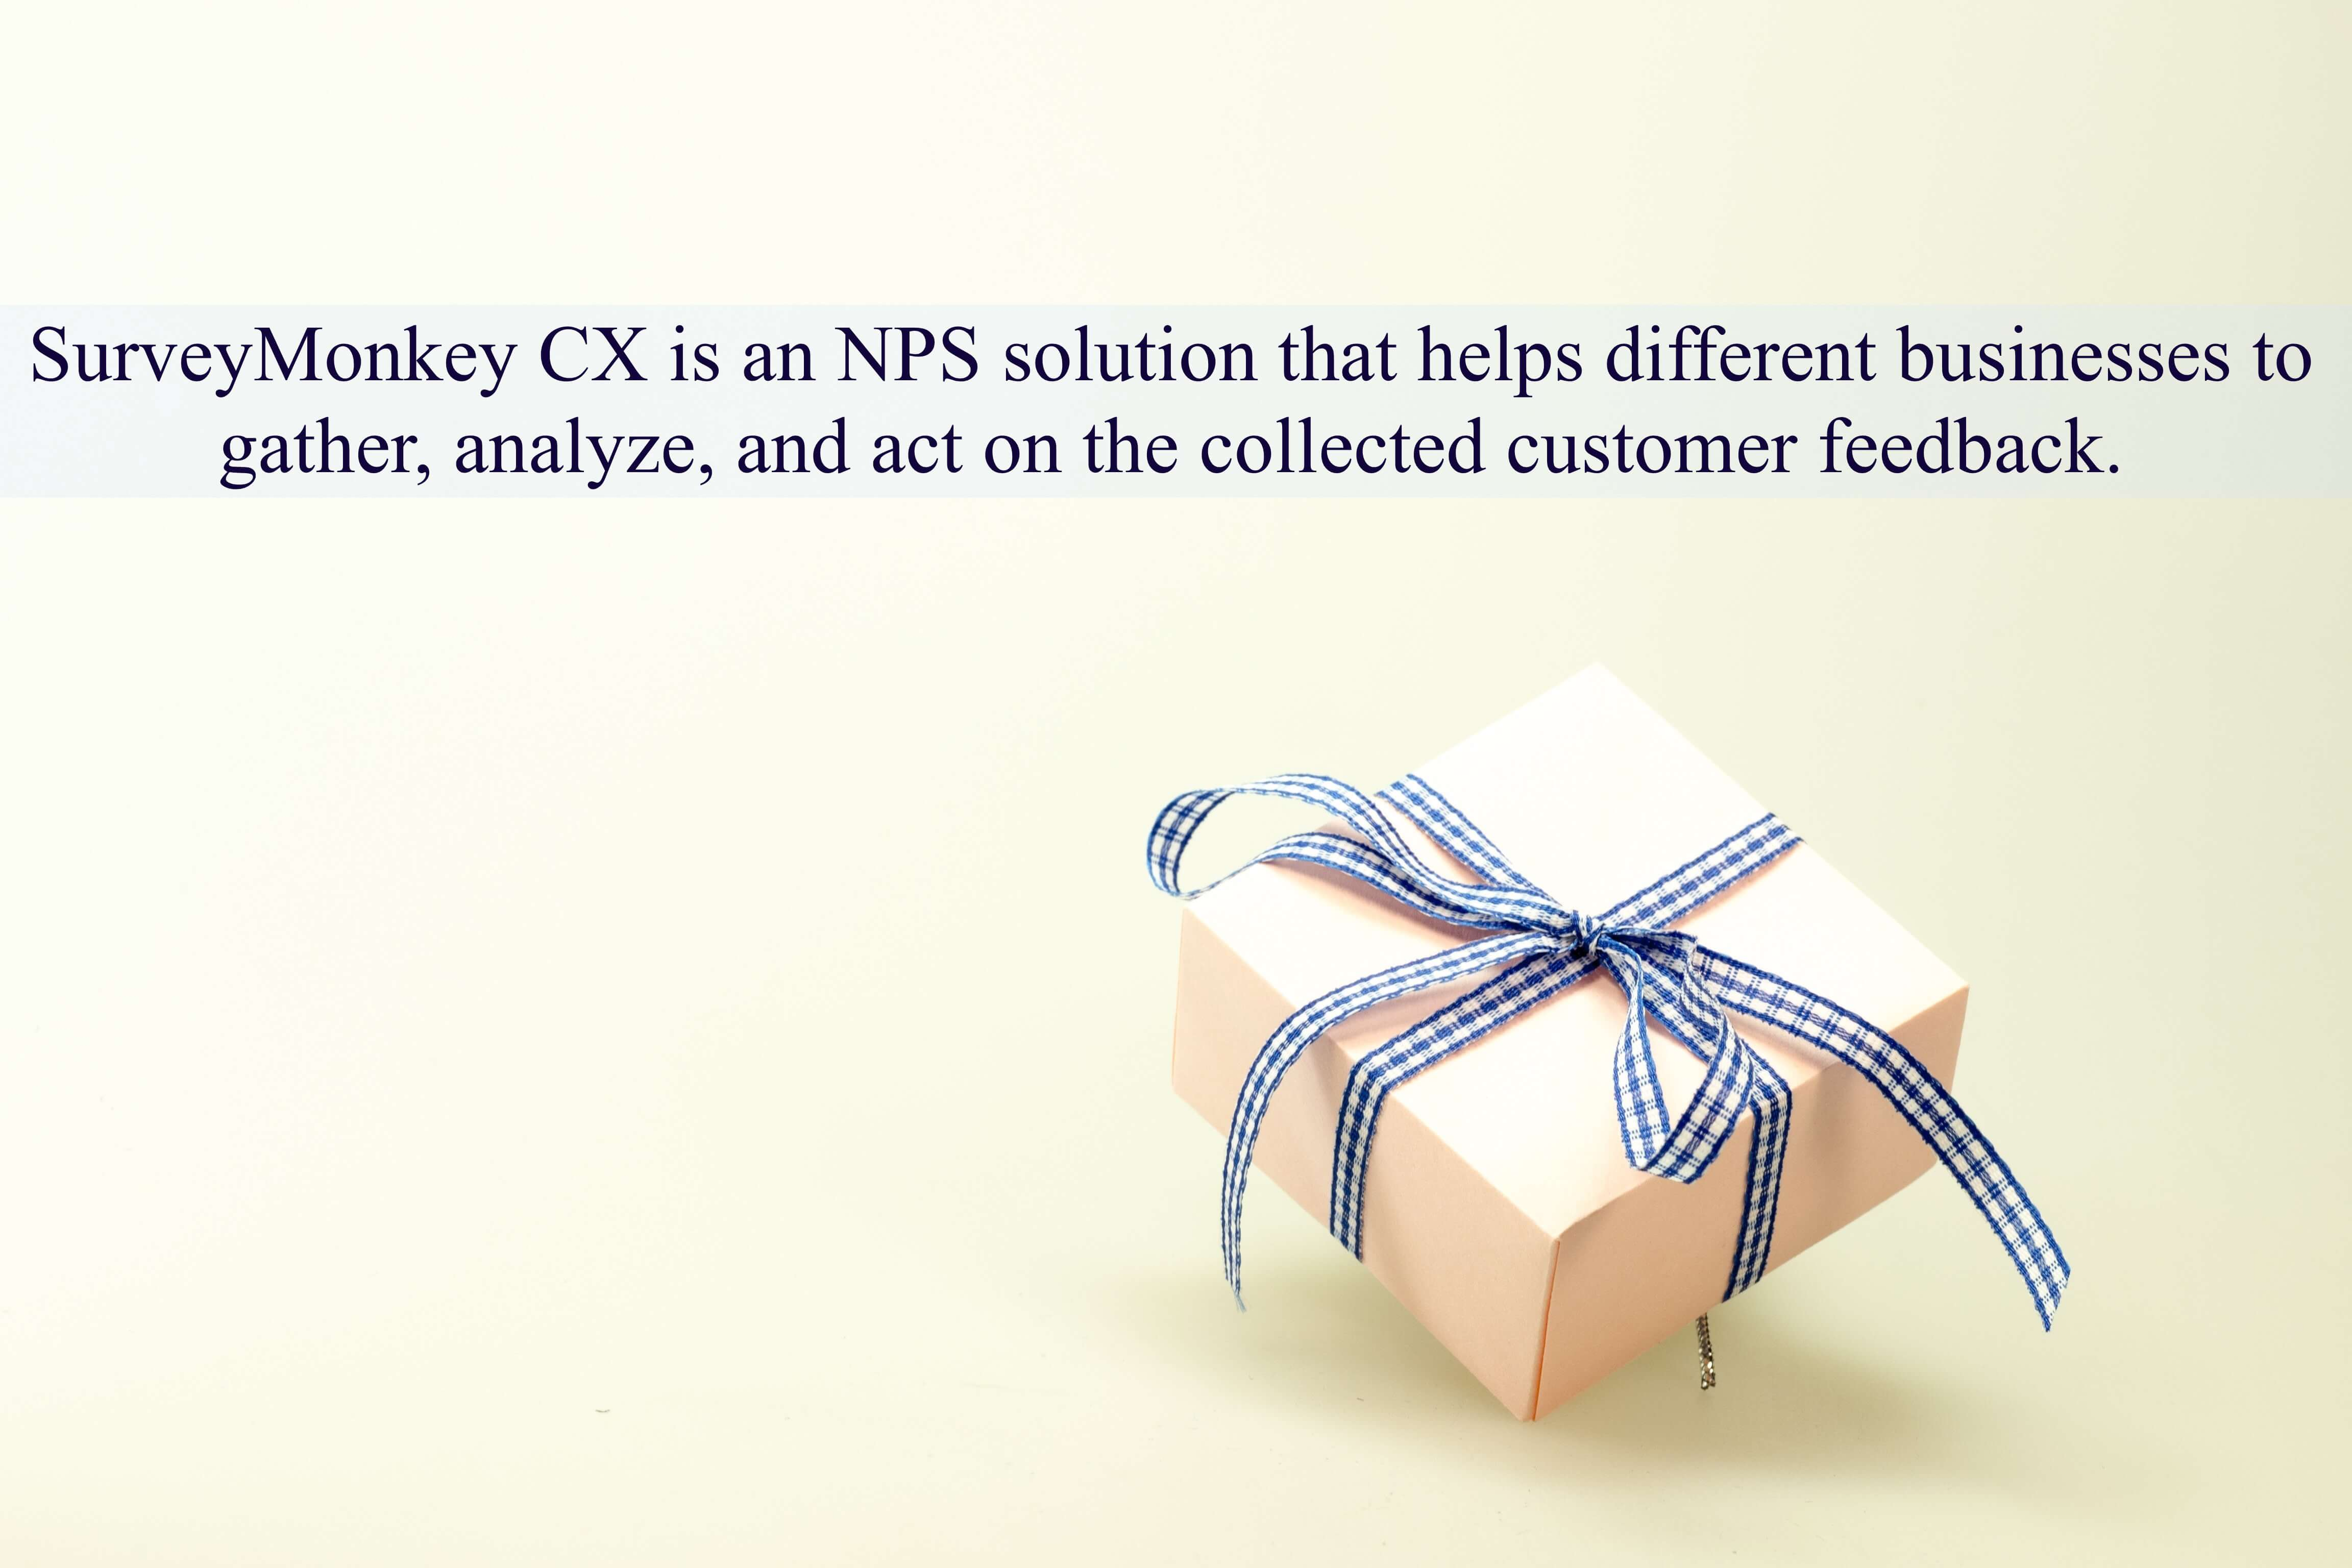 SurveyMonkey CX is an NPS solution that helps different businesses to gather, analyze, and act on the collected customer feedback.